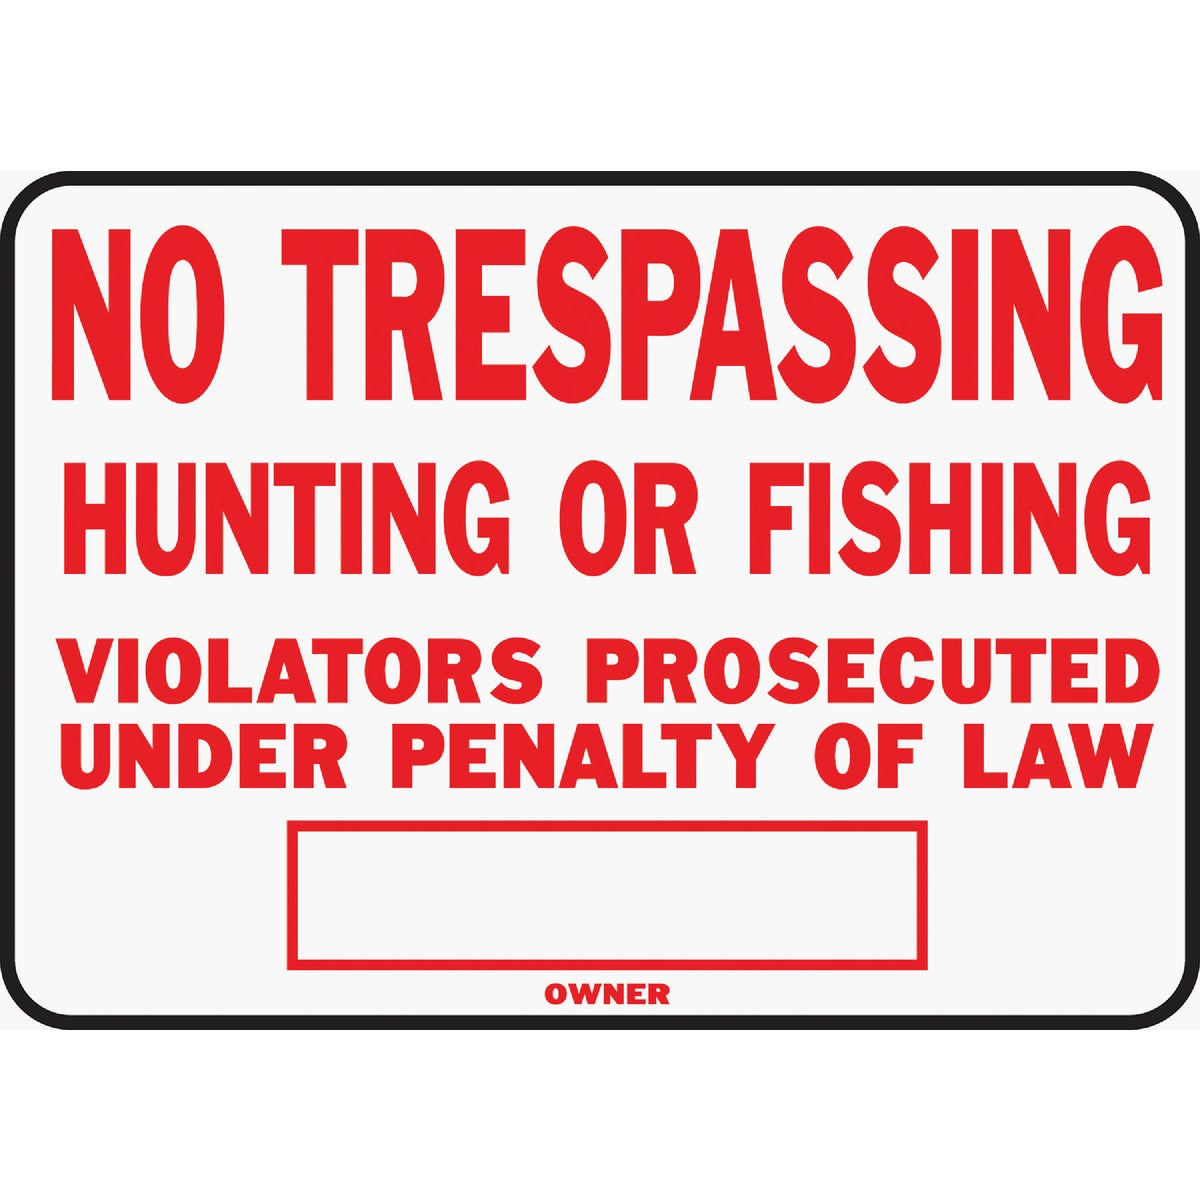 10X14 NO TRESPASS SIGN - SS-5 by Hy Ko Prods Co